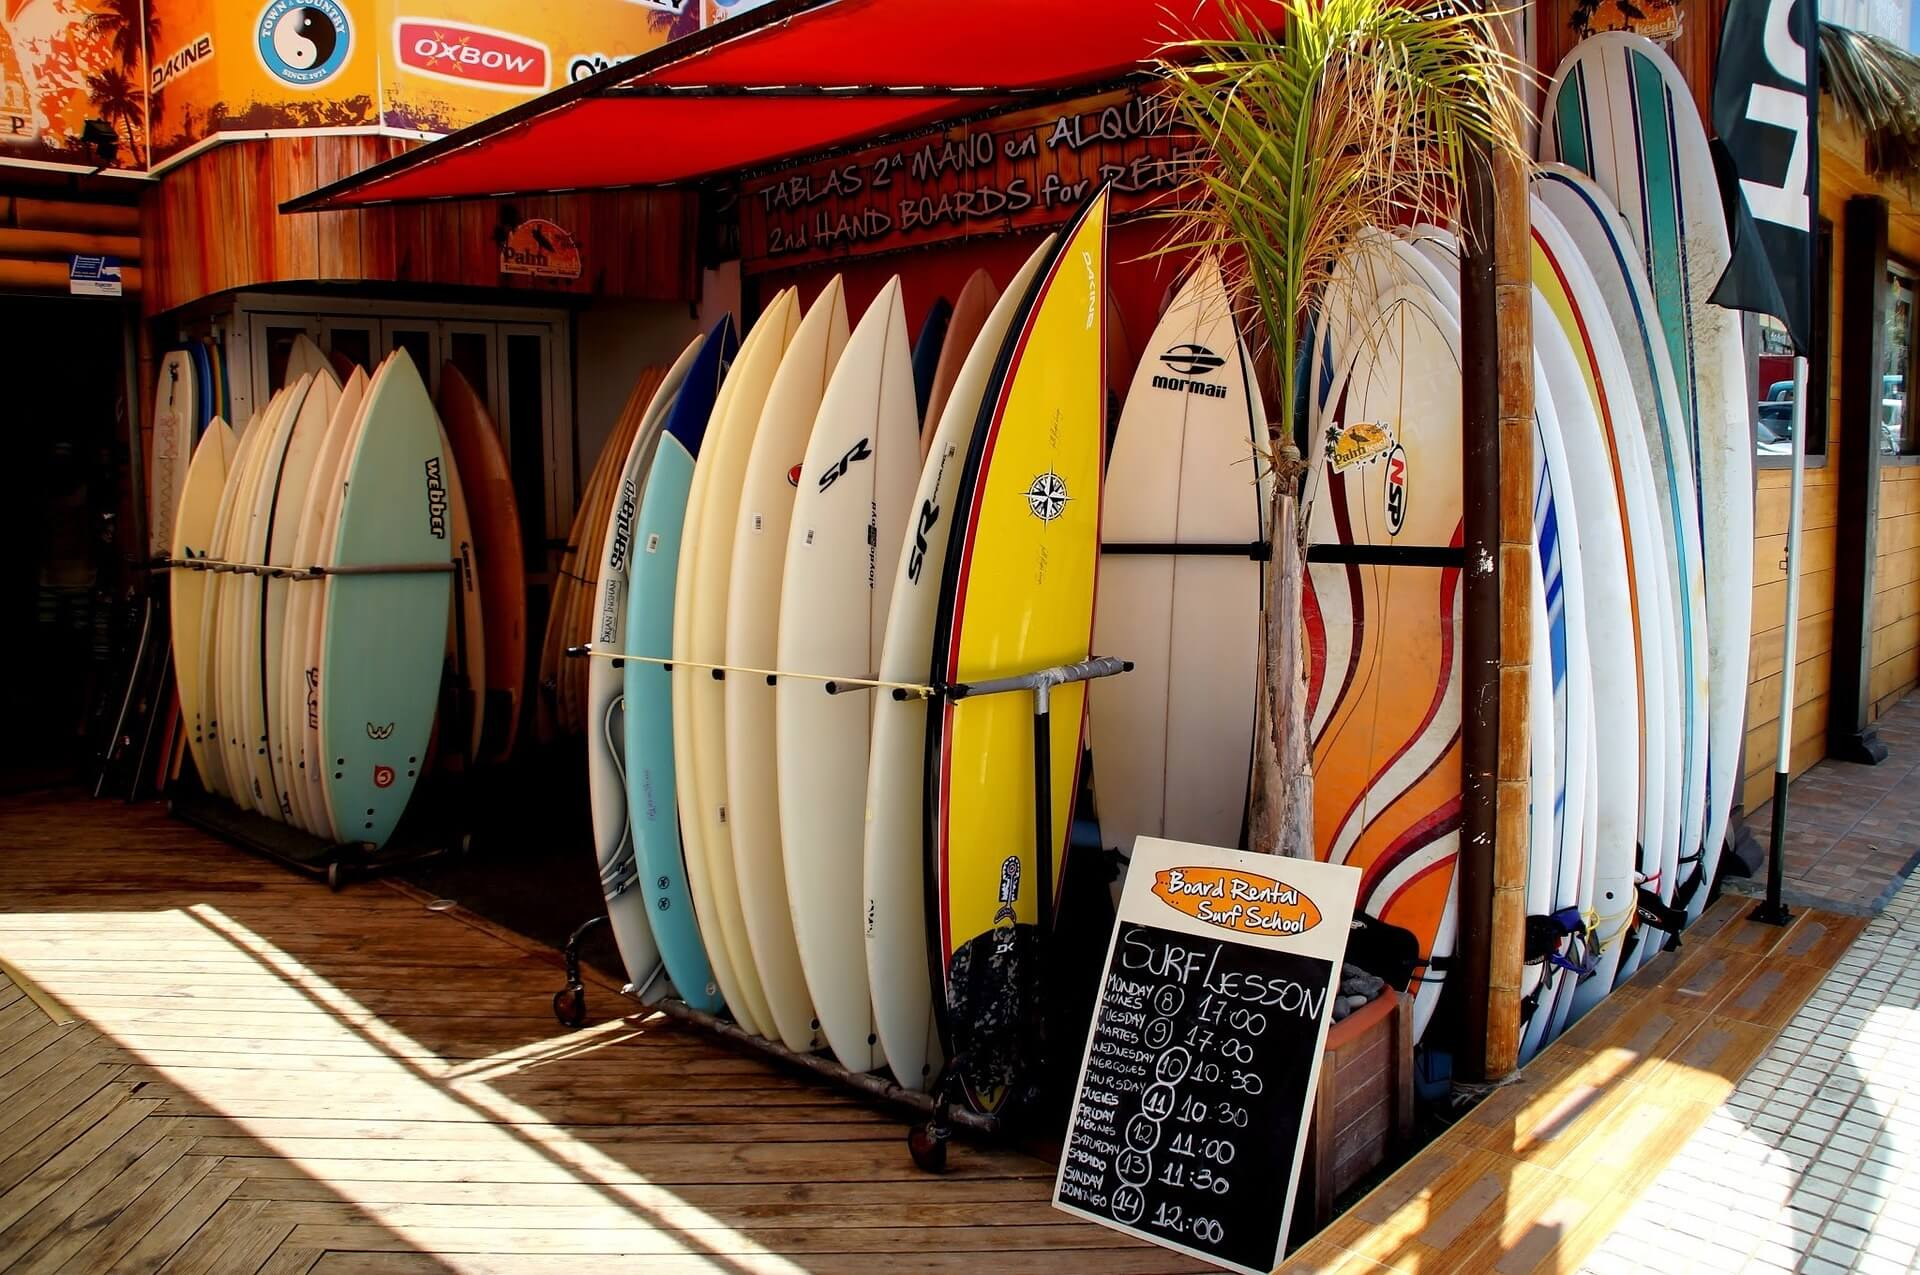 Surf shop in Tenerife - Surfing is one of the amazing outdoor activities in Tenerife not to miss